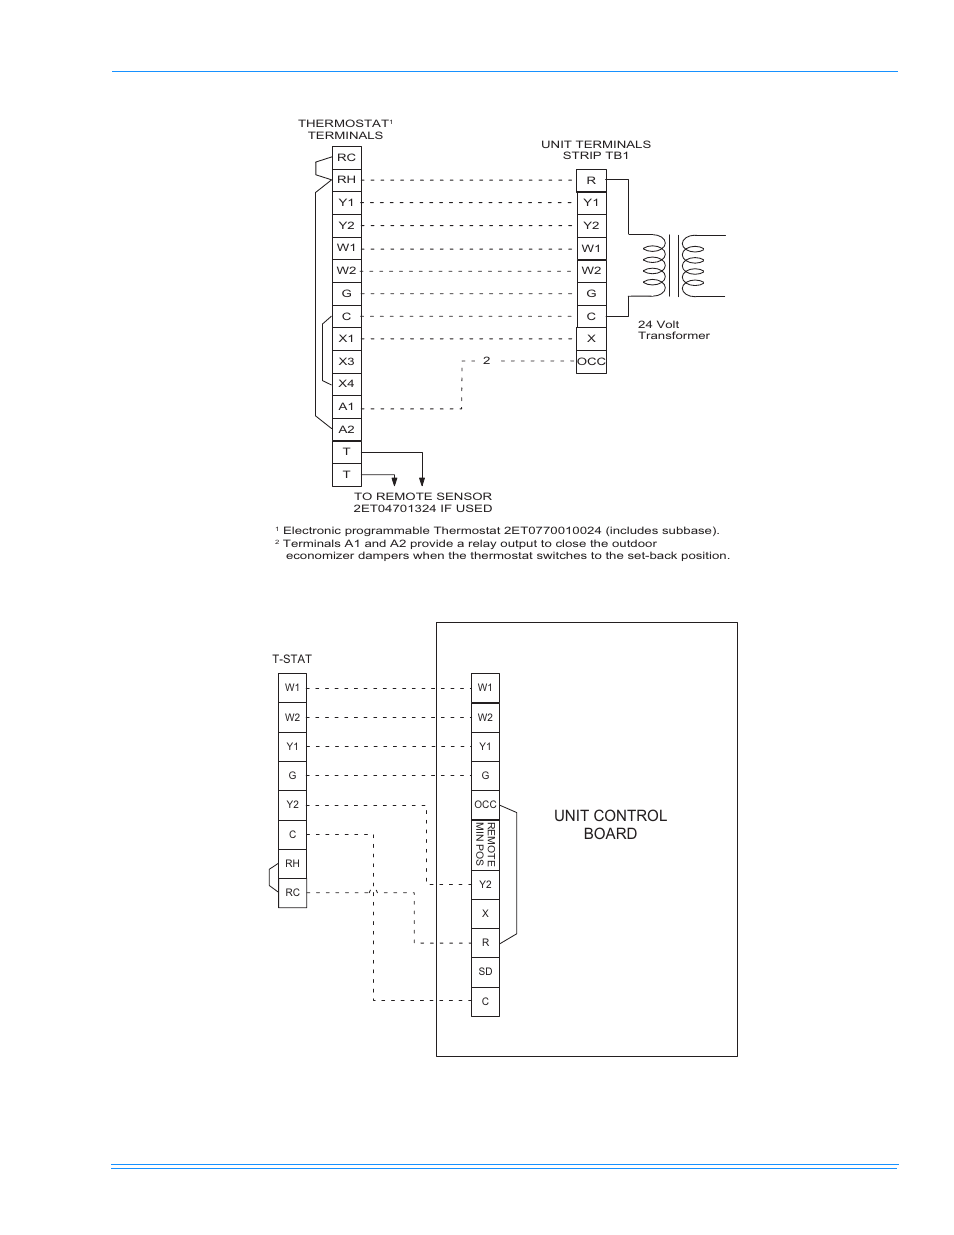 Figure 17 Electronic Thermostat Field Wiring 18 York 24 Volt Dm150 User Manual Page 60